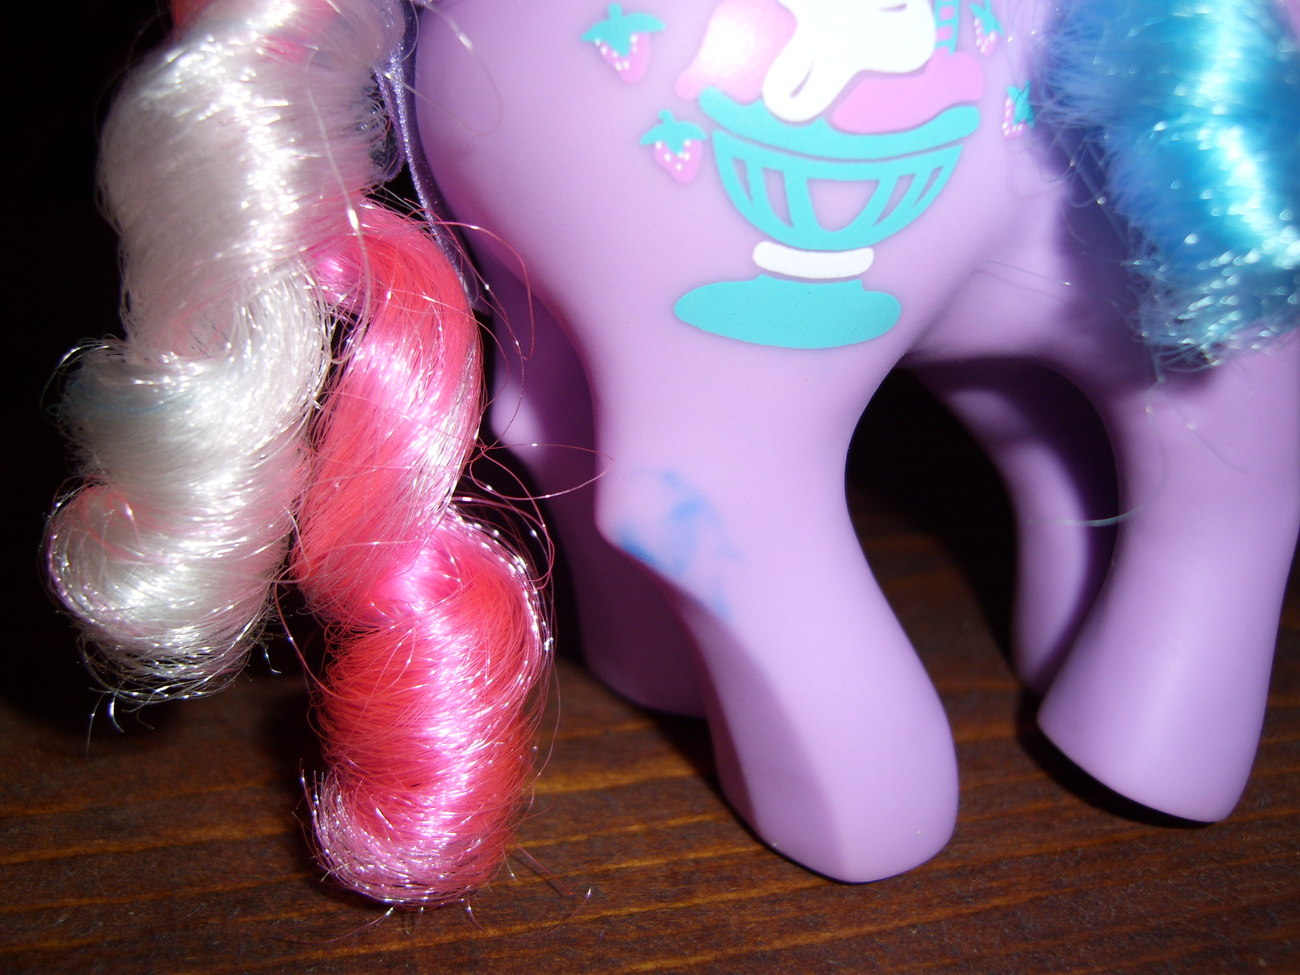 My Little Pony G1 Strawberry Scoops